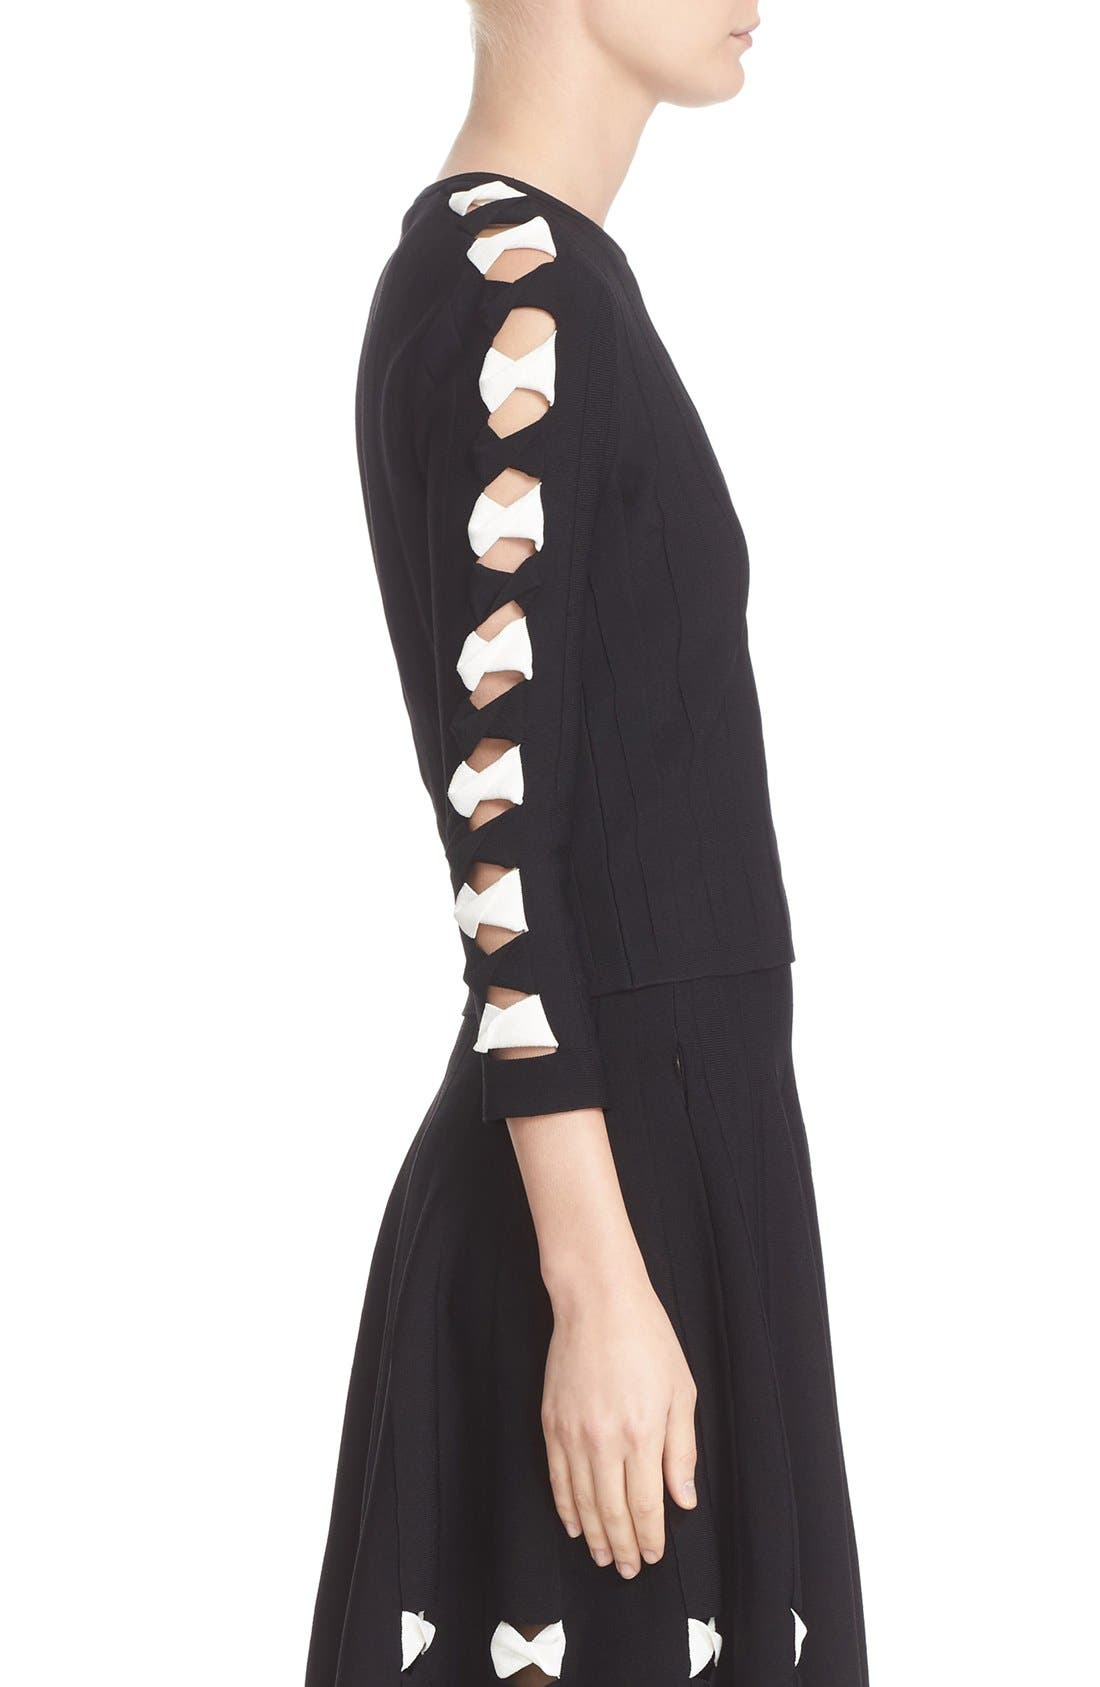 Twisted Cutout Knit Top,                             Alternate thumbnail 4, color,                             Black/ Ivory